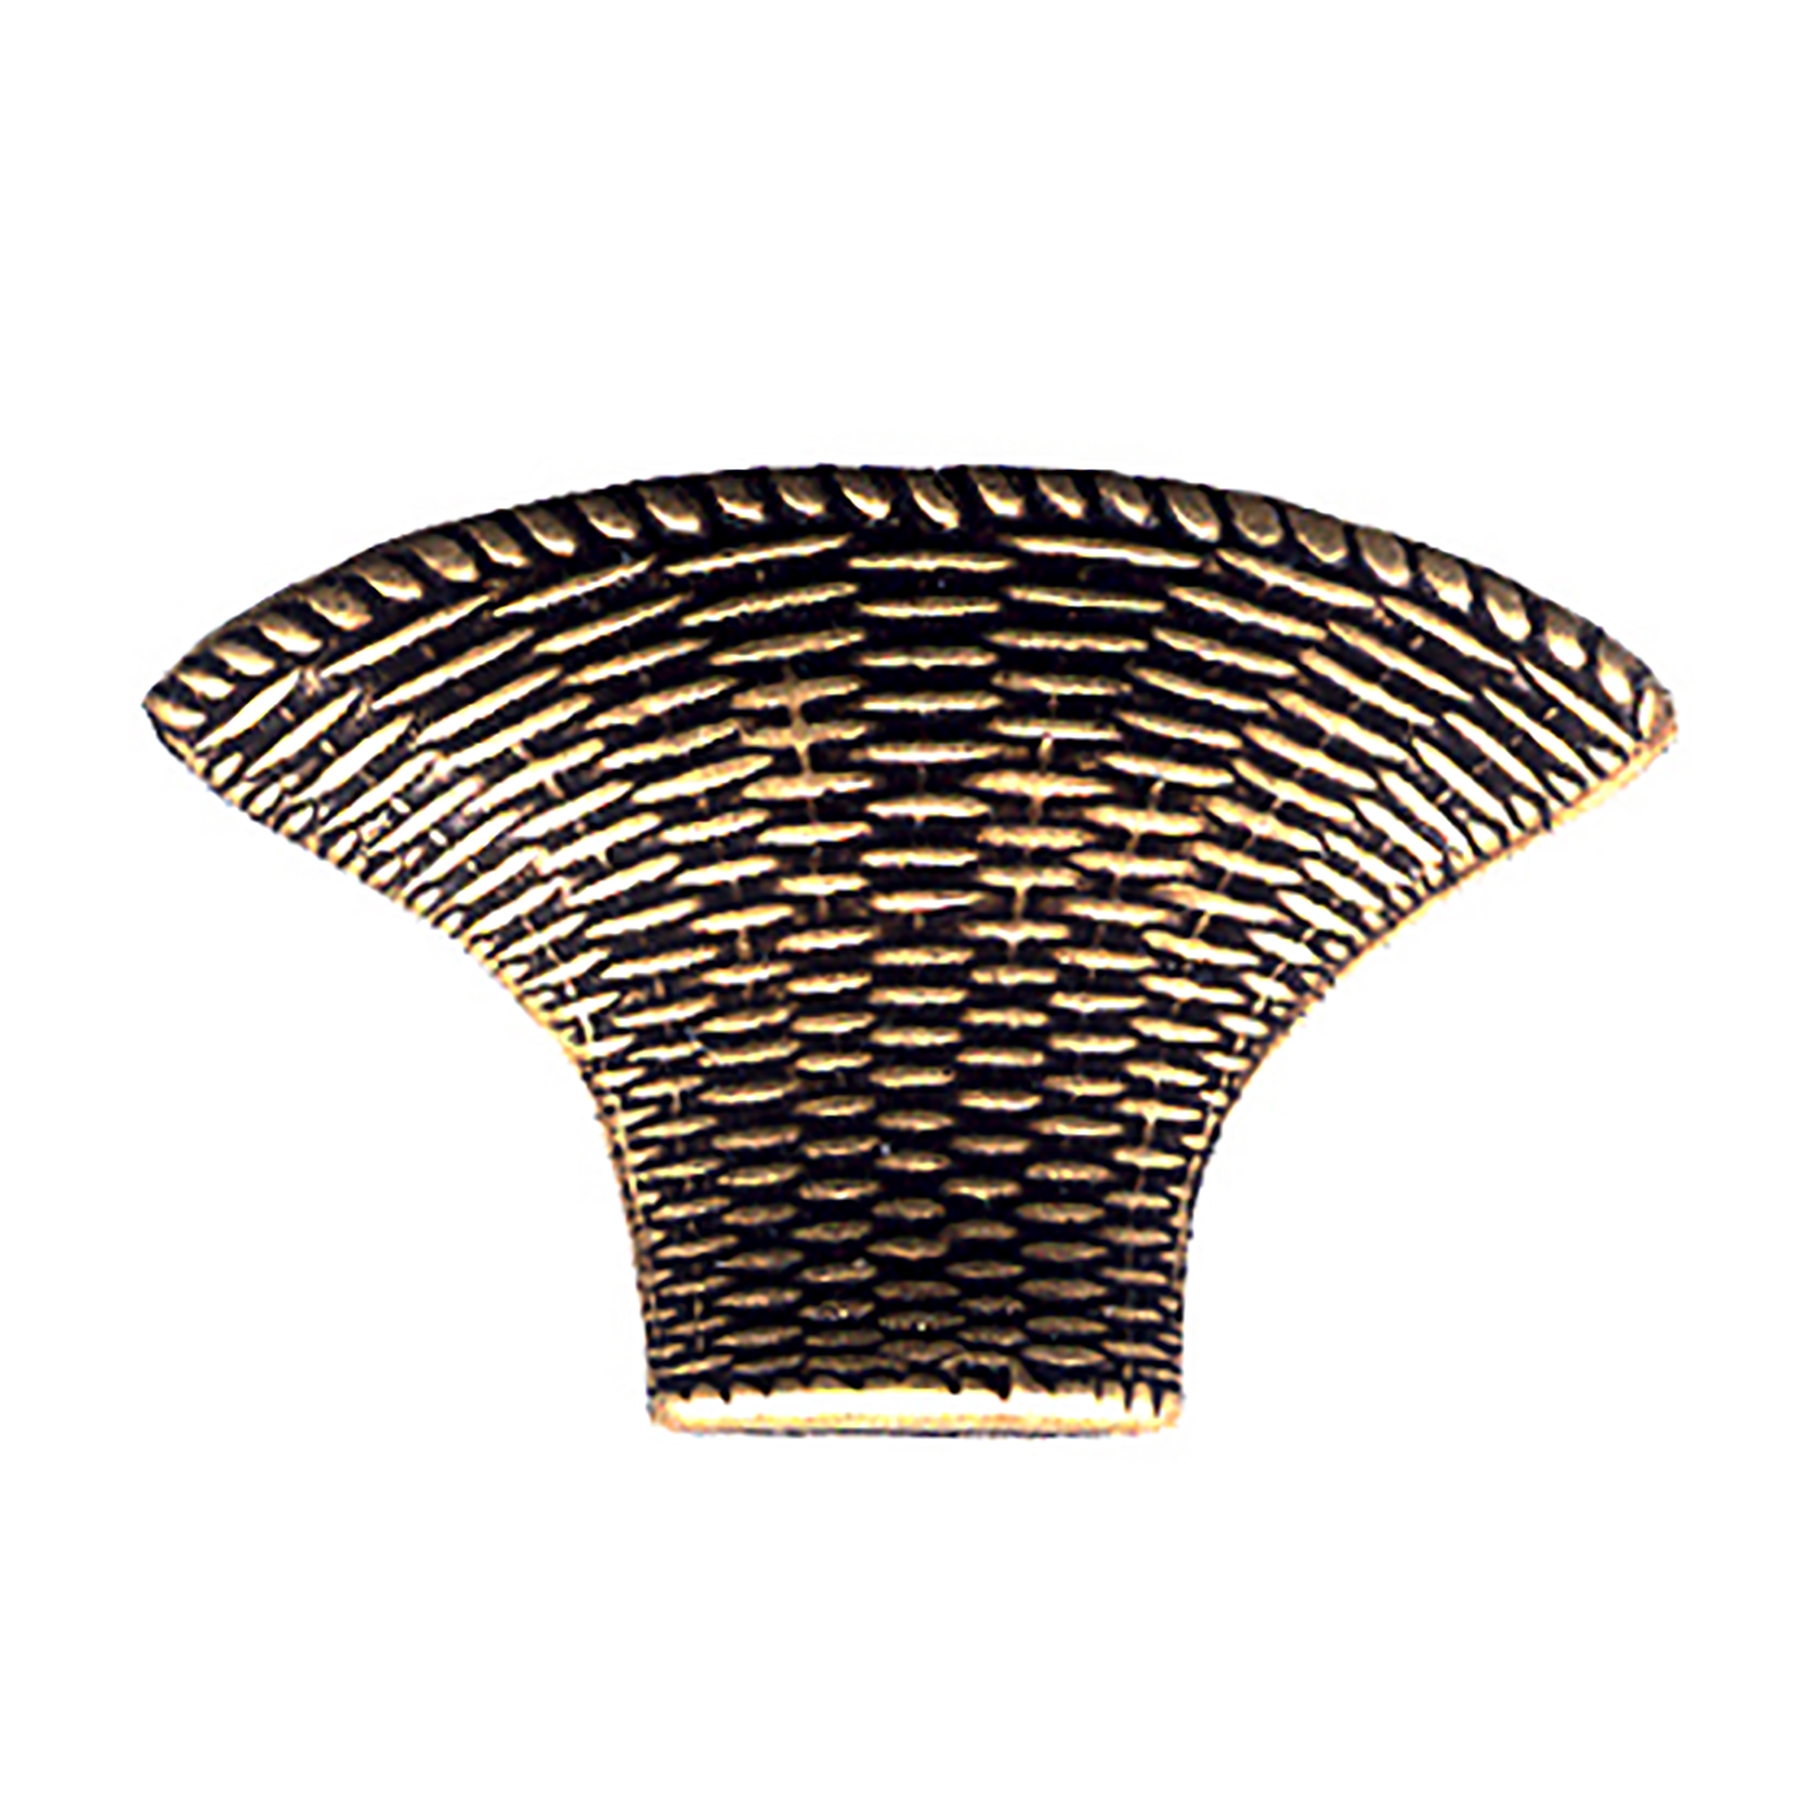 basket, brass ox, 07992, brass stamping, antique brass, plated brass, basket stamping, basket weaving, weave, jewelry supplies, jewelry making, Bsue Boutiques. embellishments